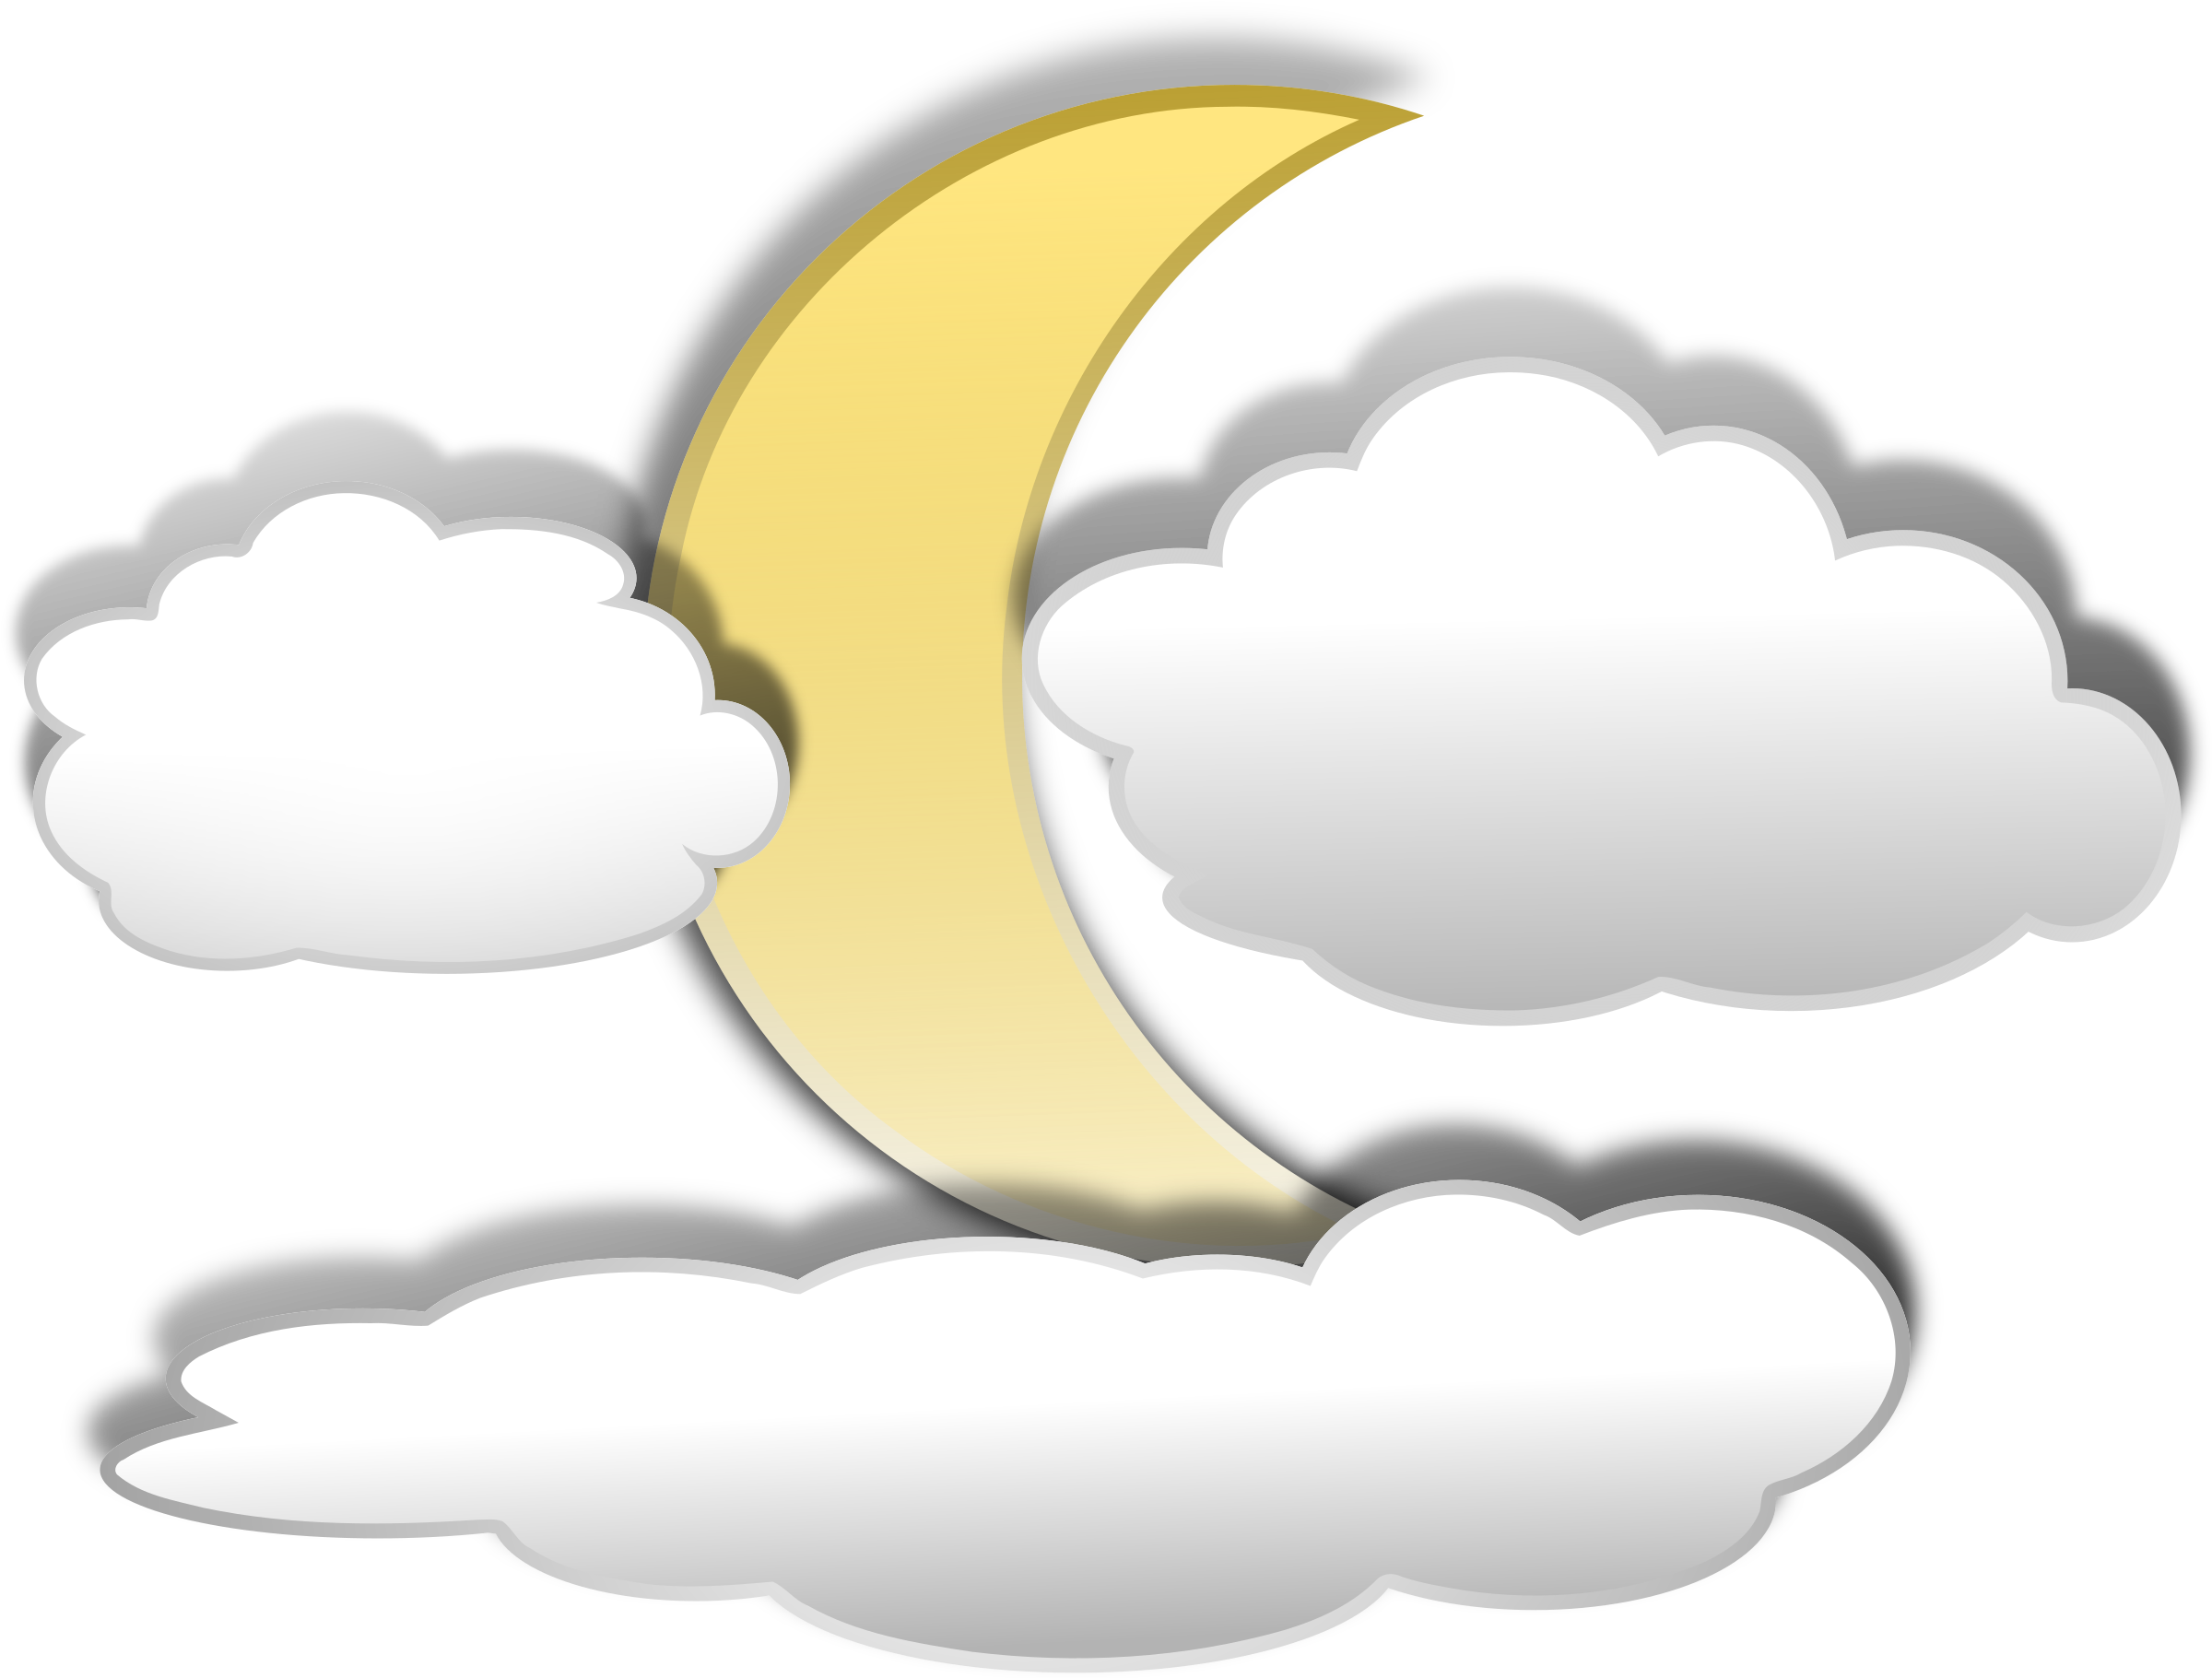 Clouds clipart clip art. Full moon at getdrawings